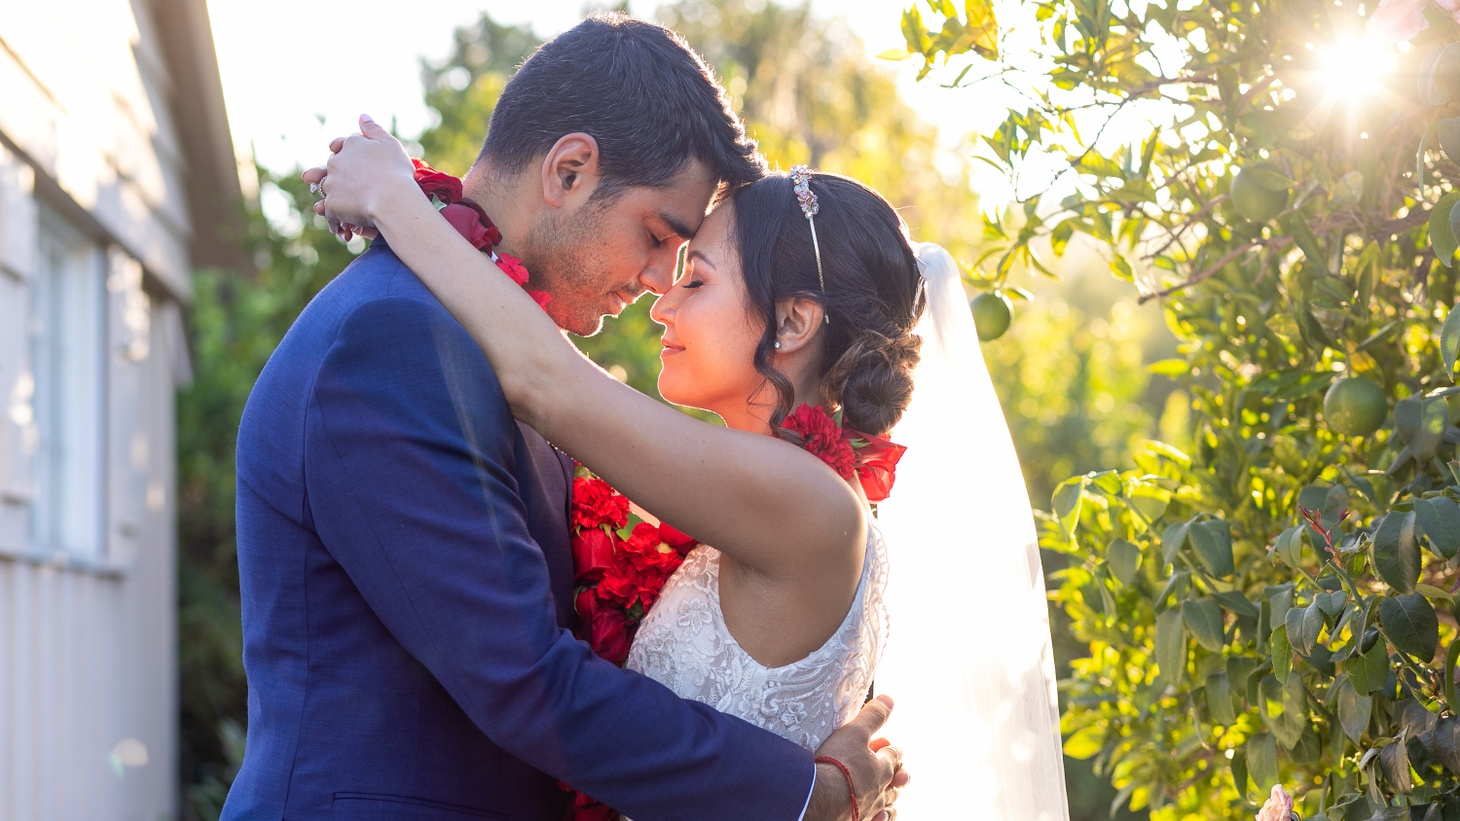 Miriam Hershman and Sagar Yadav canceled plans for a big autumn wedding and got married in front of five guests last month.